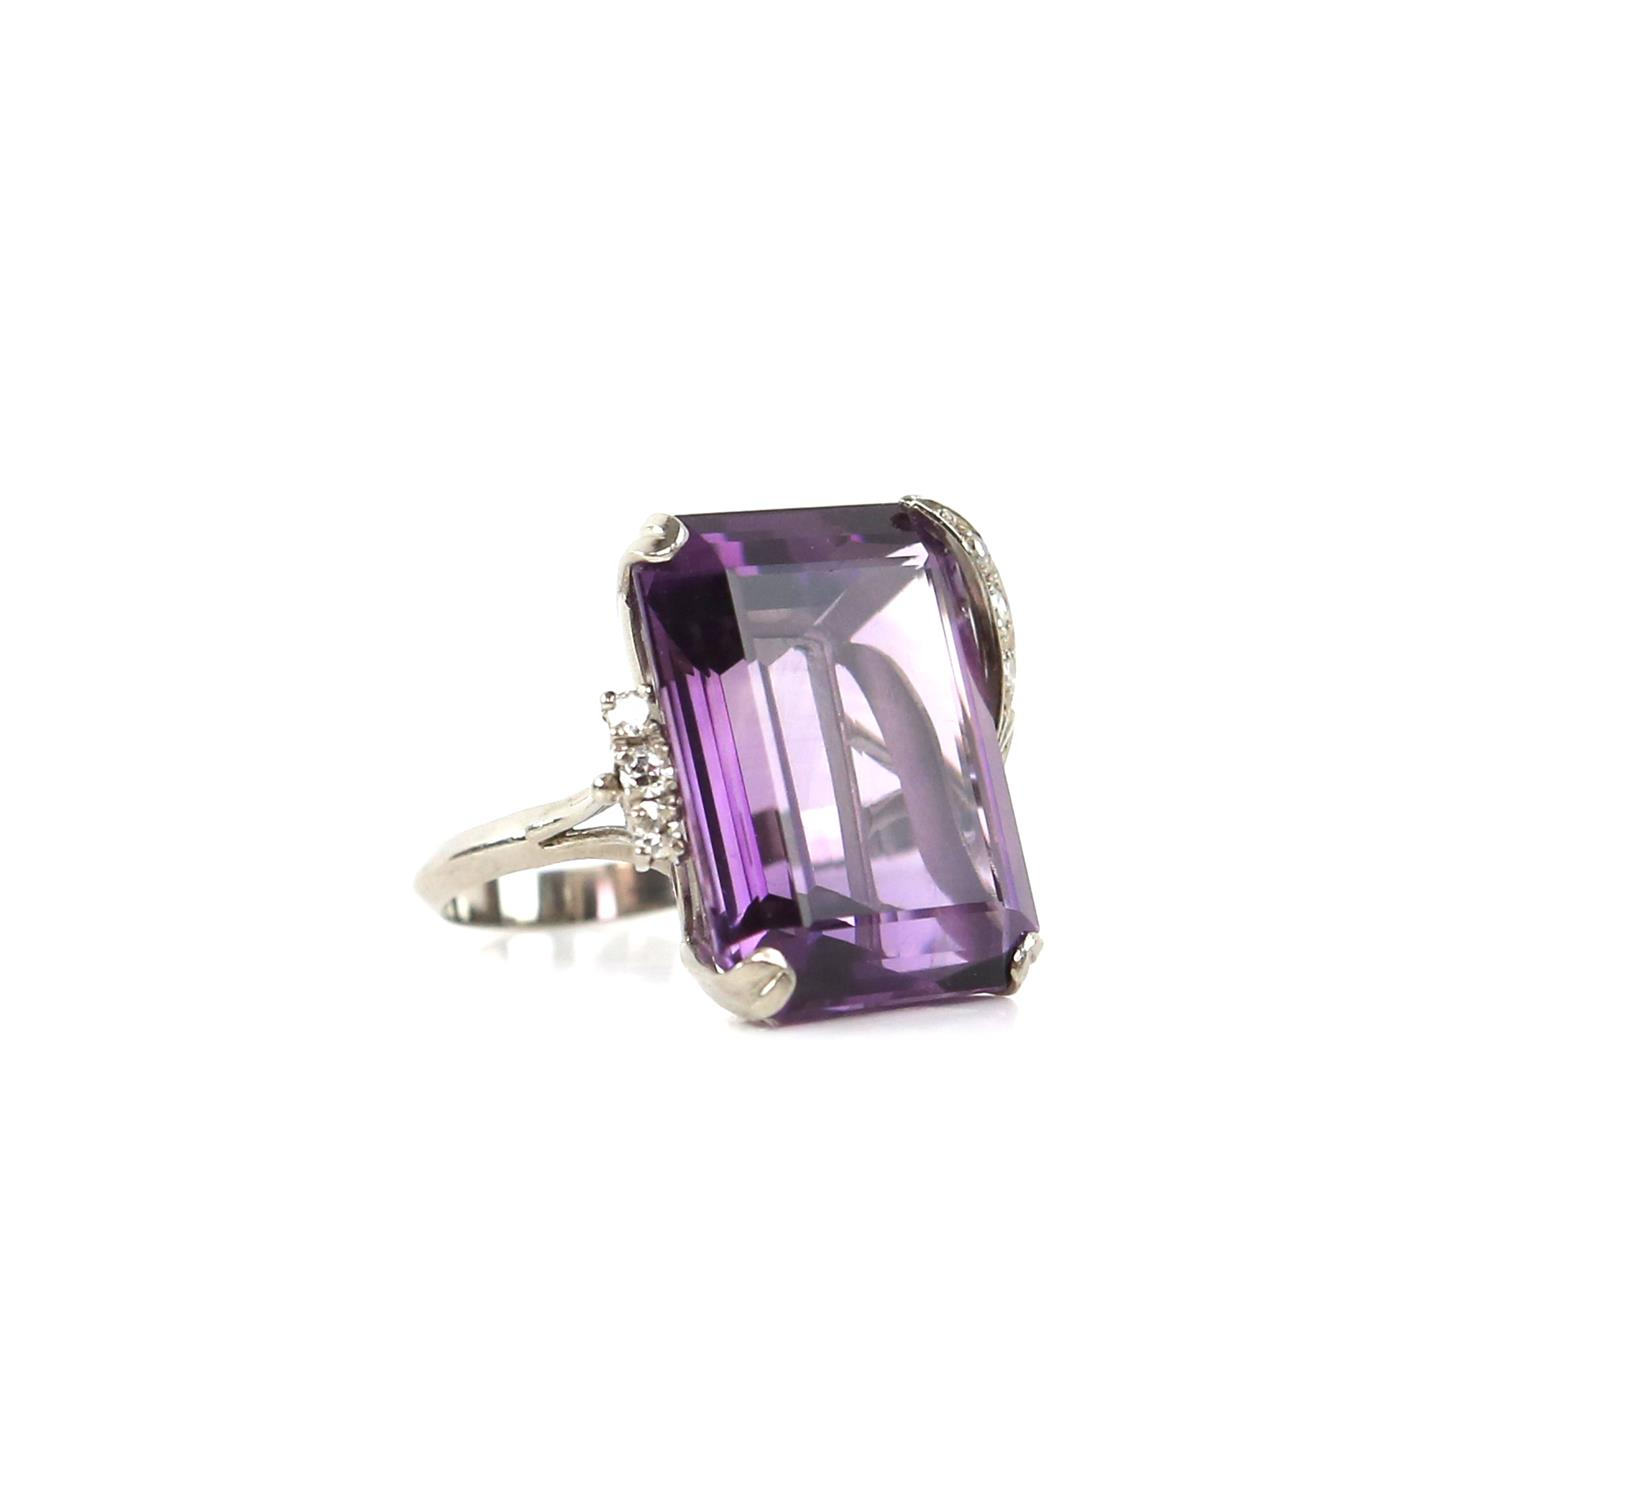 Amethyst and diamond cocktail ring, central rectangular cut amethyst, estimate weight 22.78 carats,